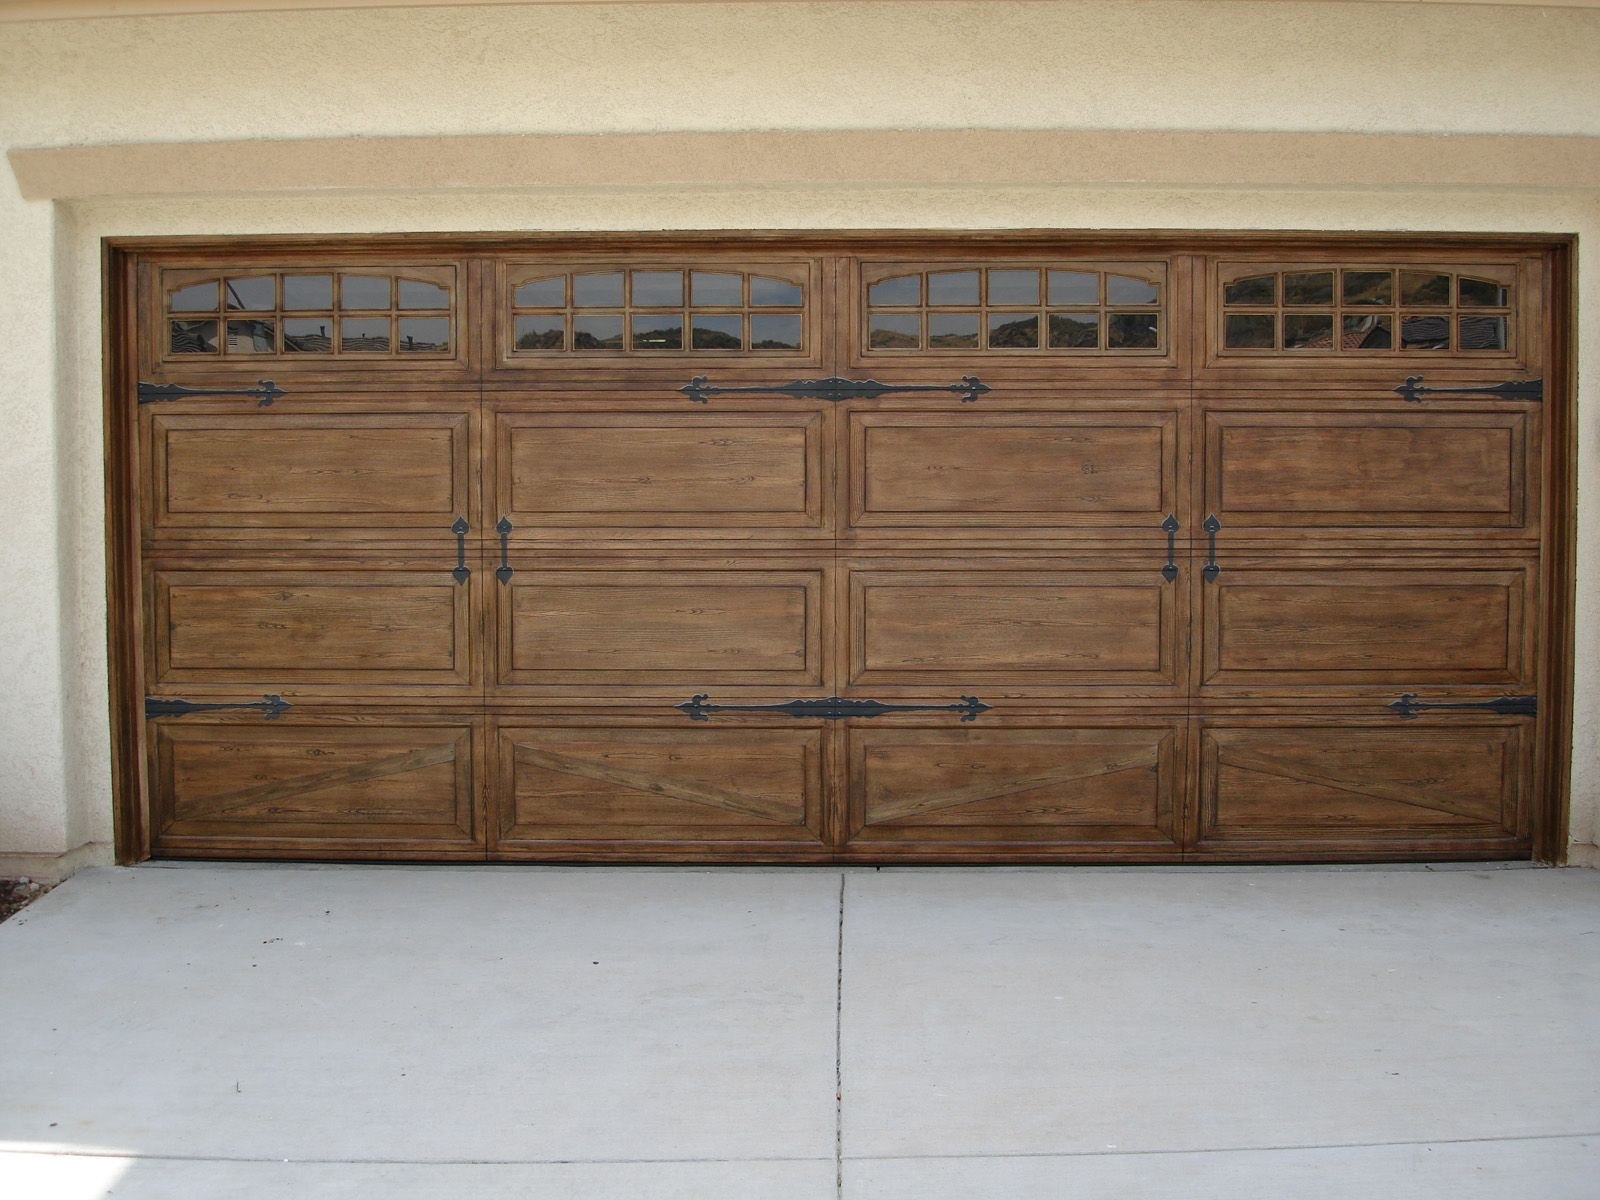 Garage door repair st louis in st louis mo dream home for Garage door repair st louis mo